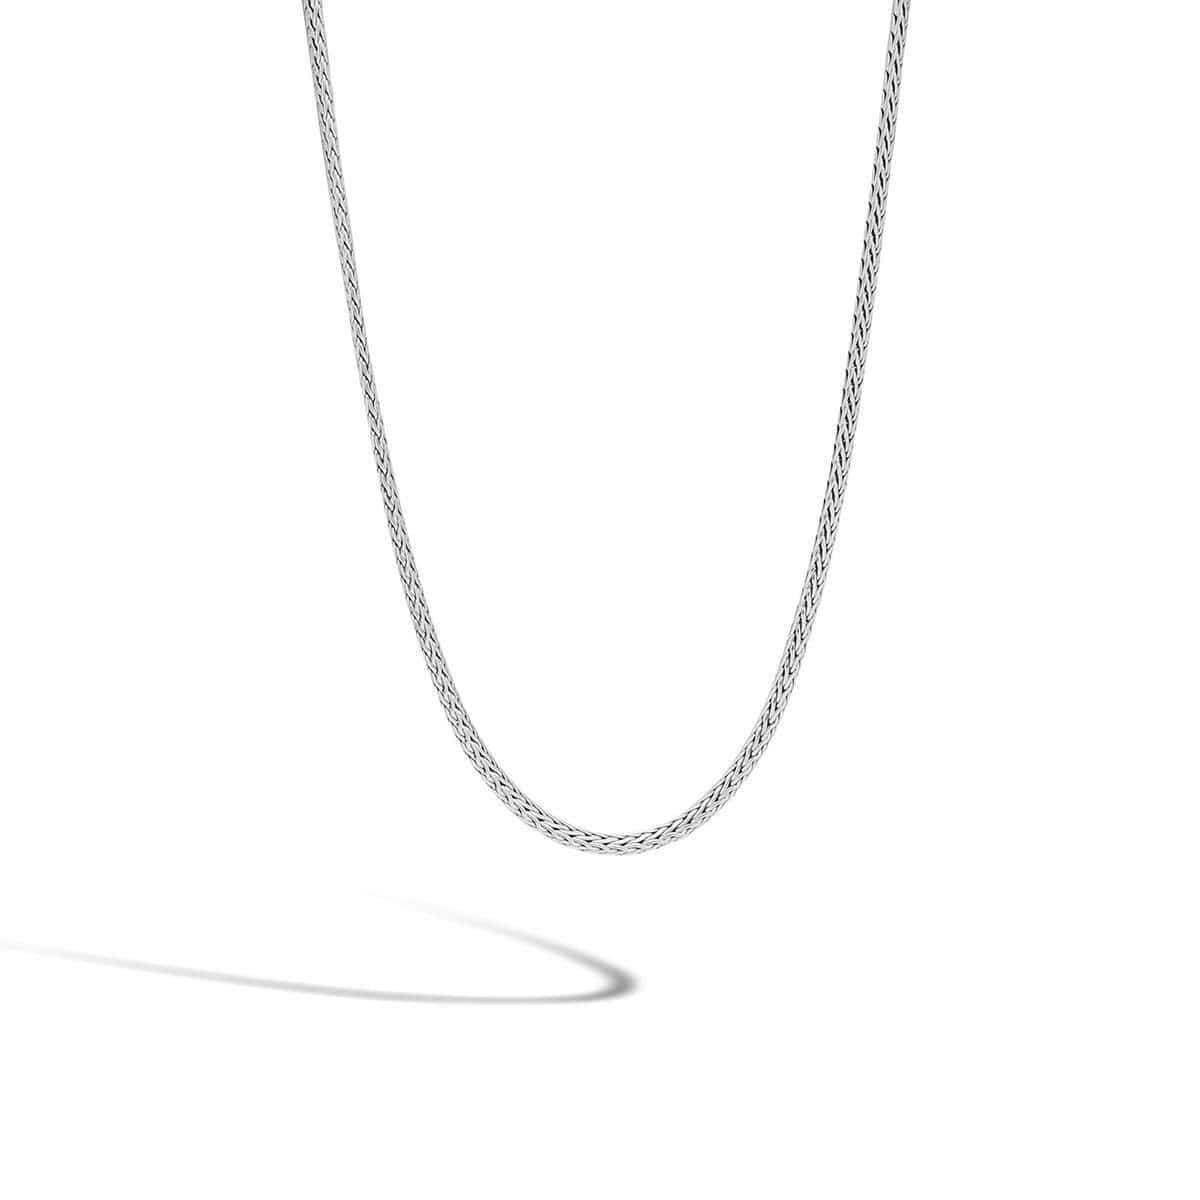 Classic Chain Silver Mini Necklace - NB92C-John Hardy-Renee Taylor Gallery